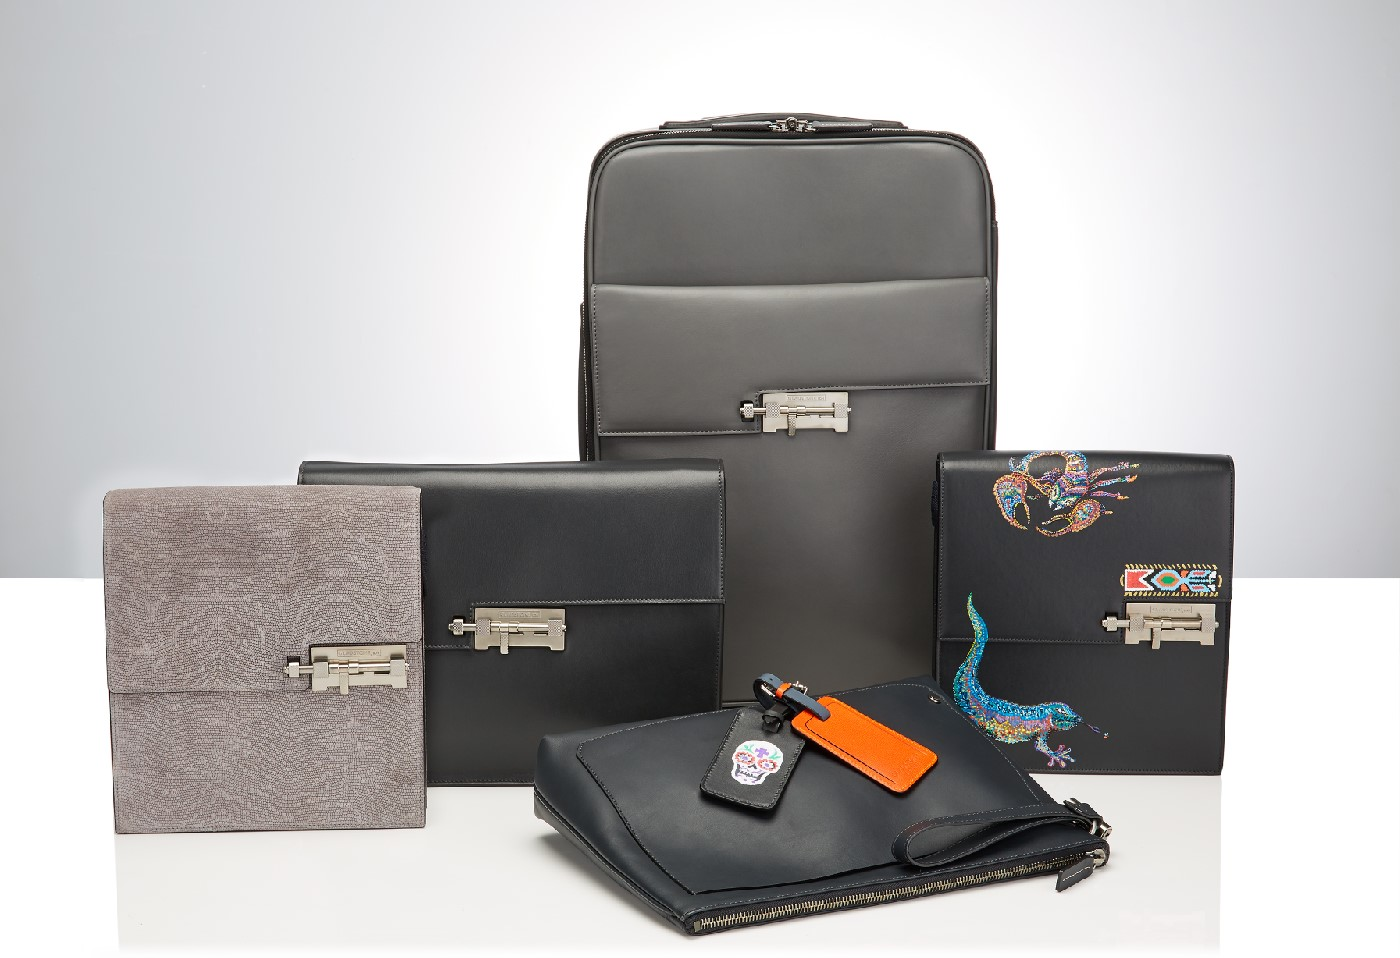 Gladstone London: premium leather accessory brand, targeted at fashionable urban business gentlemen